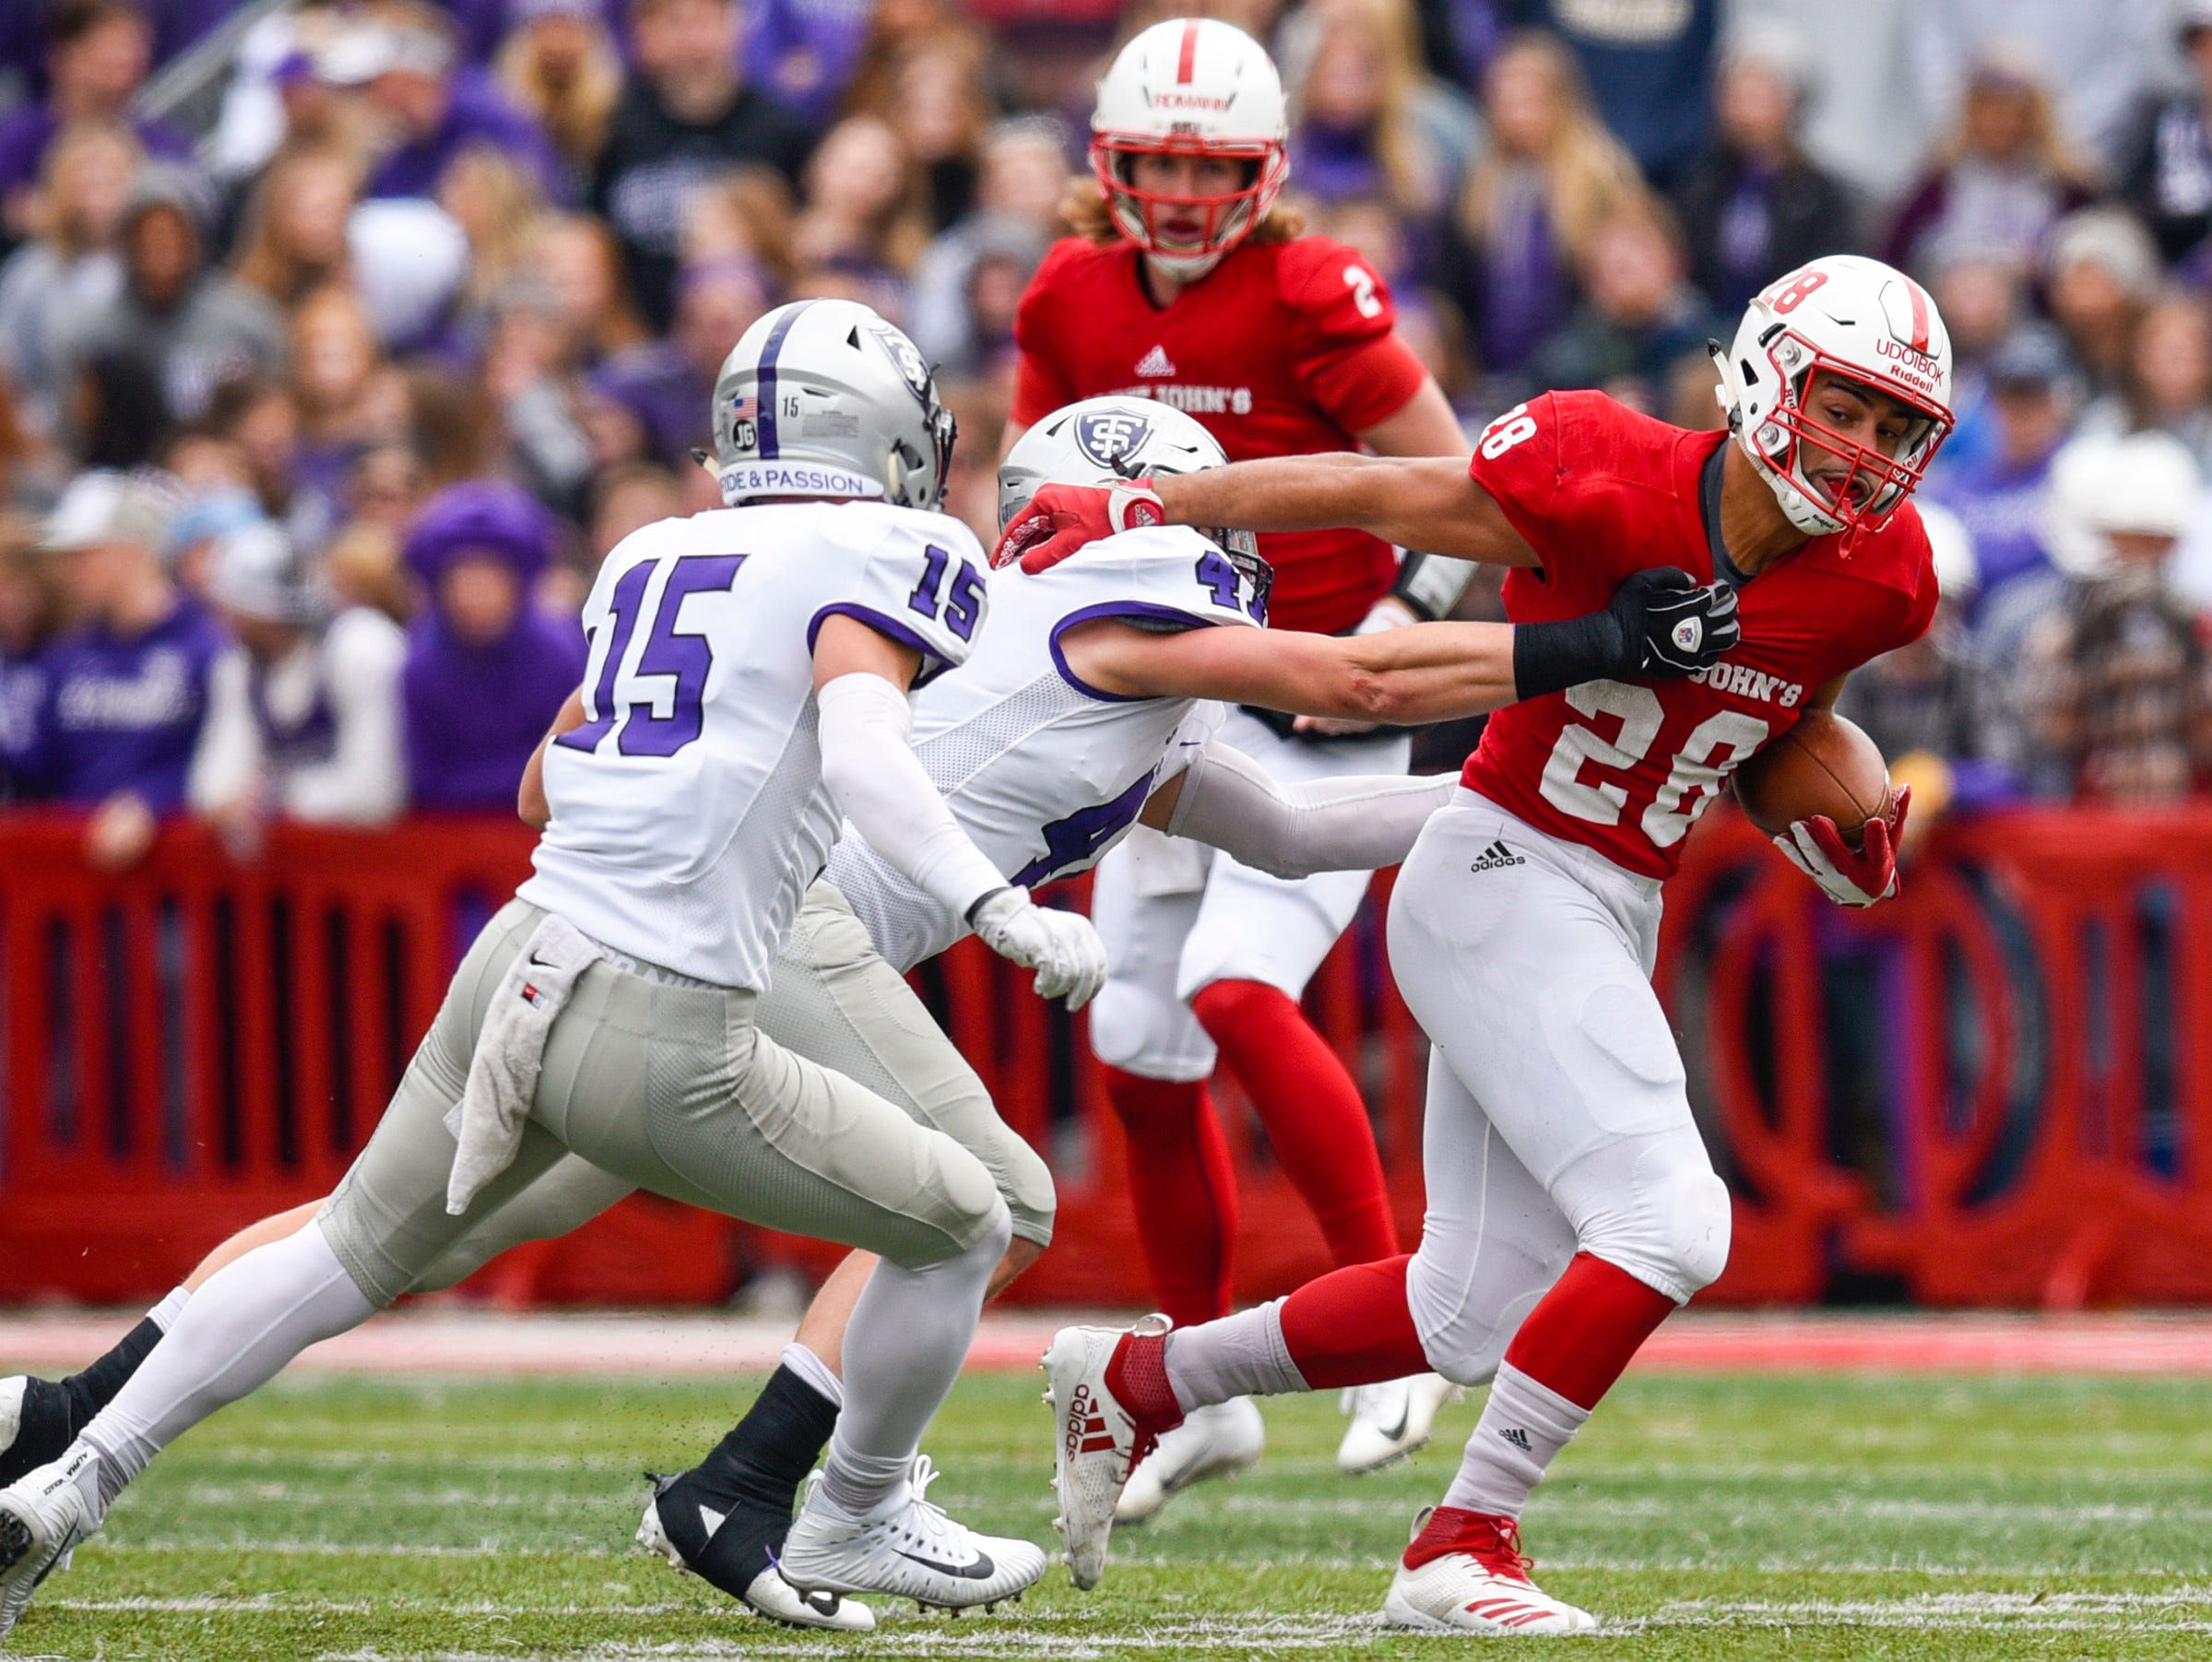 St. John's running back Kenneth Udoibok tries to push off a St. Thomas defender on a run during the first half Saturday, Oct. 13, in Collegeville.